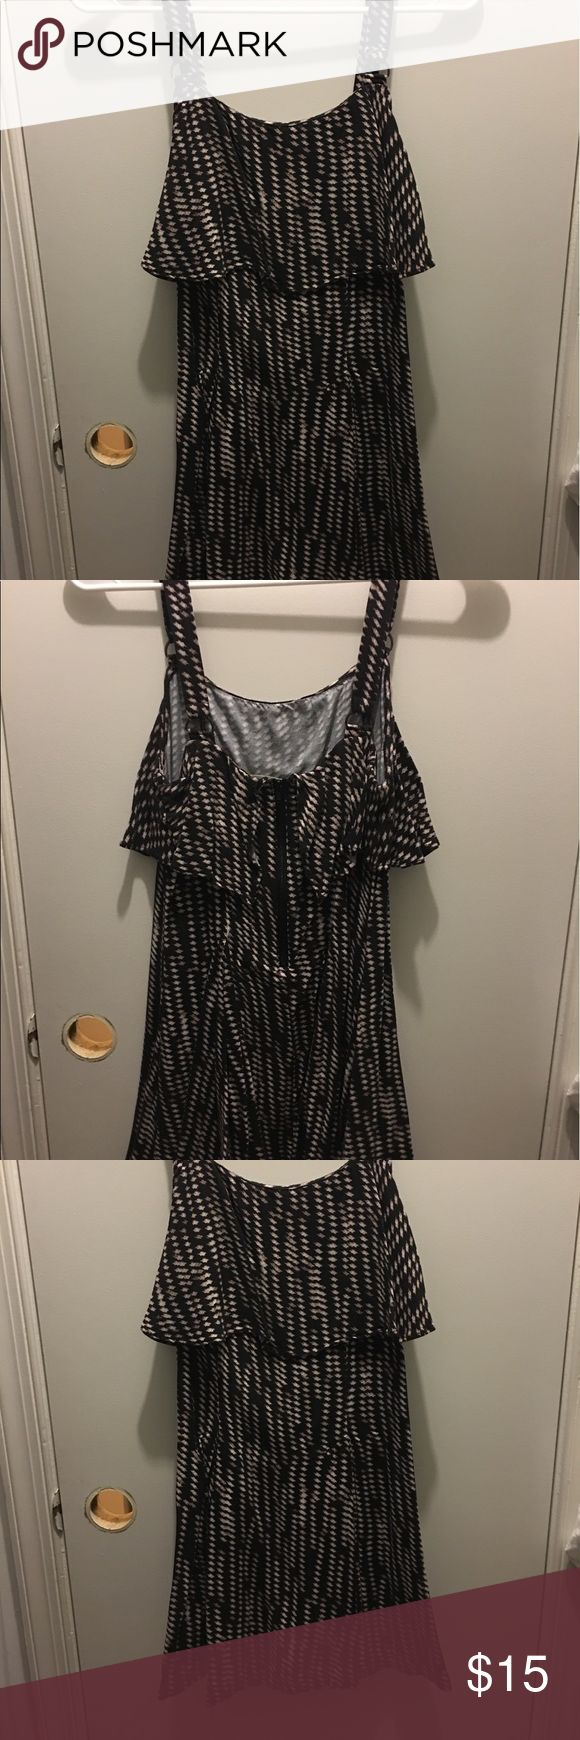 Free people dress Brown mini dress from Free People. From smoke free, dog friendly home Free People Dresses Mini